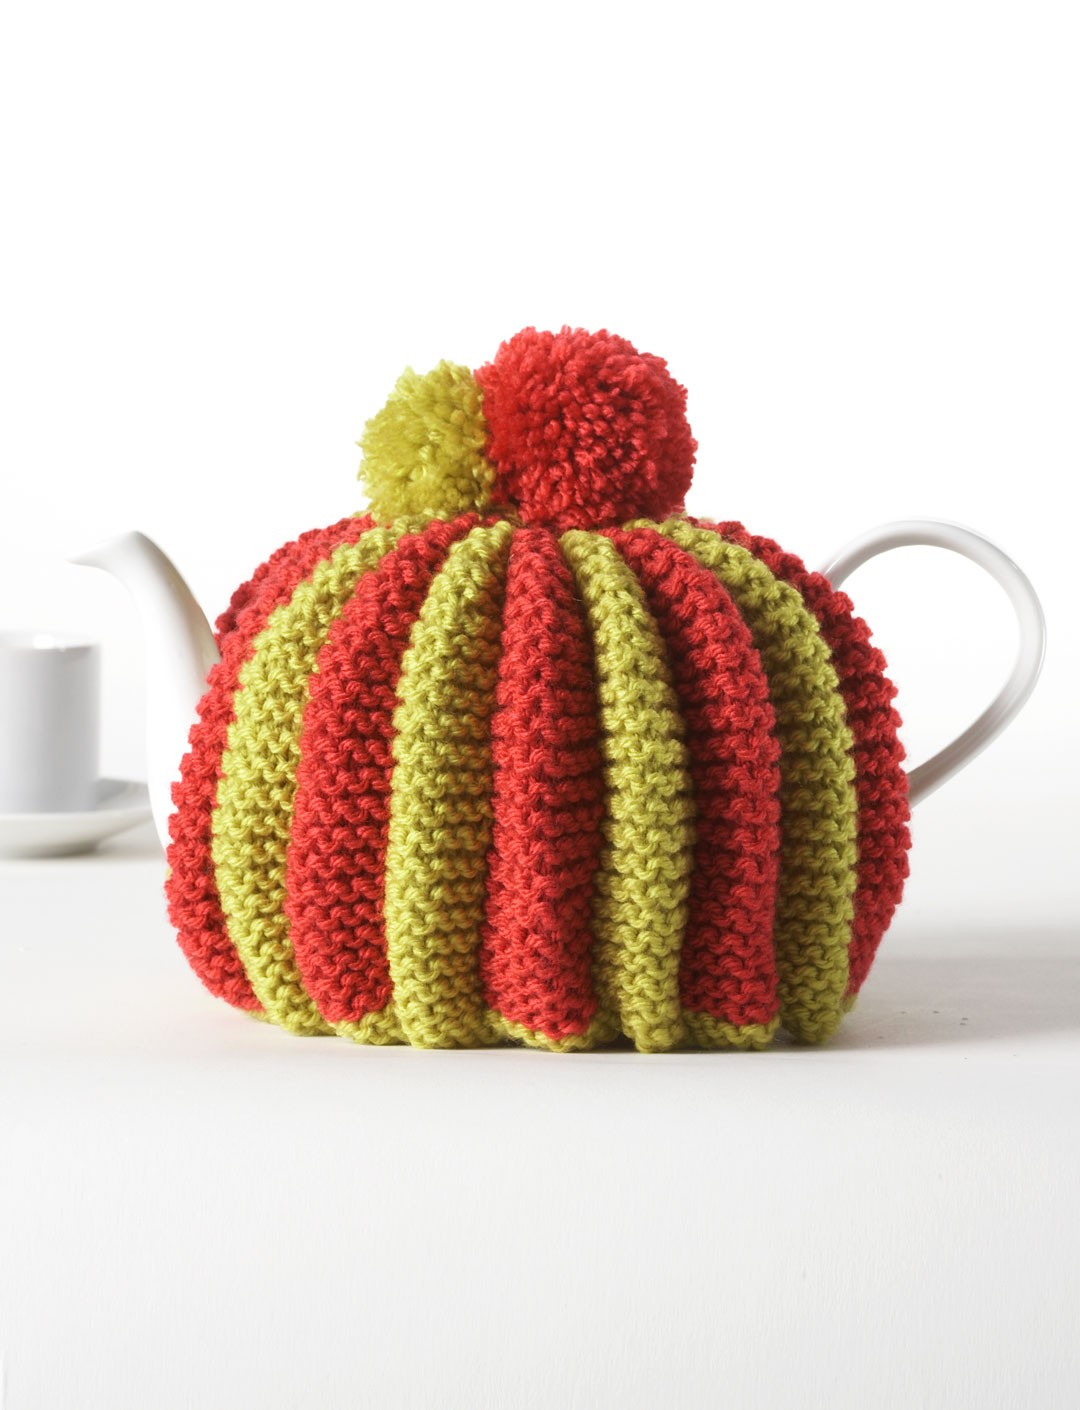 Bernat Knitted Pleated Tea Cozy, Knit Pattern Yarnspirations